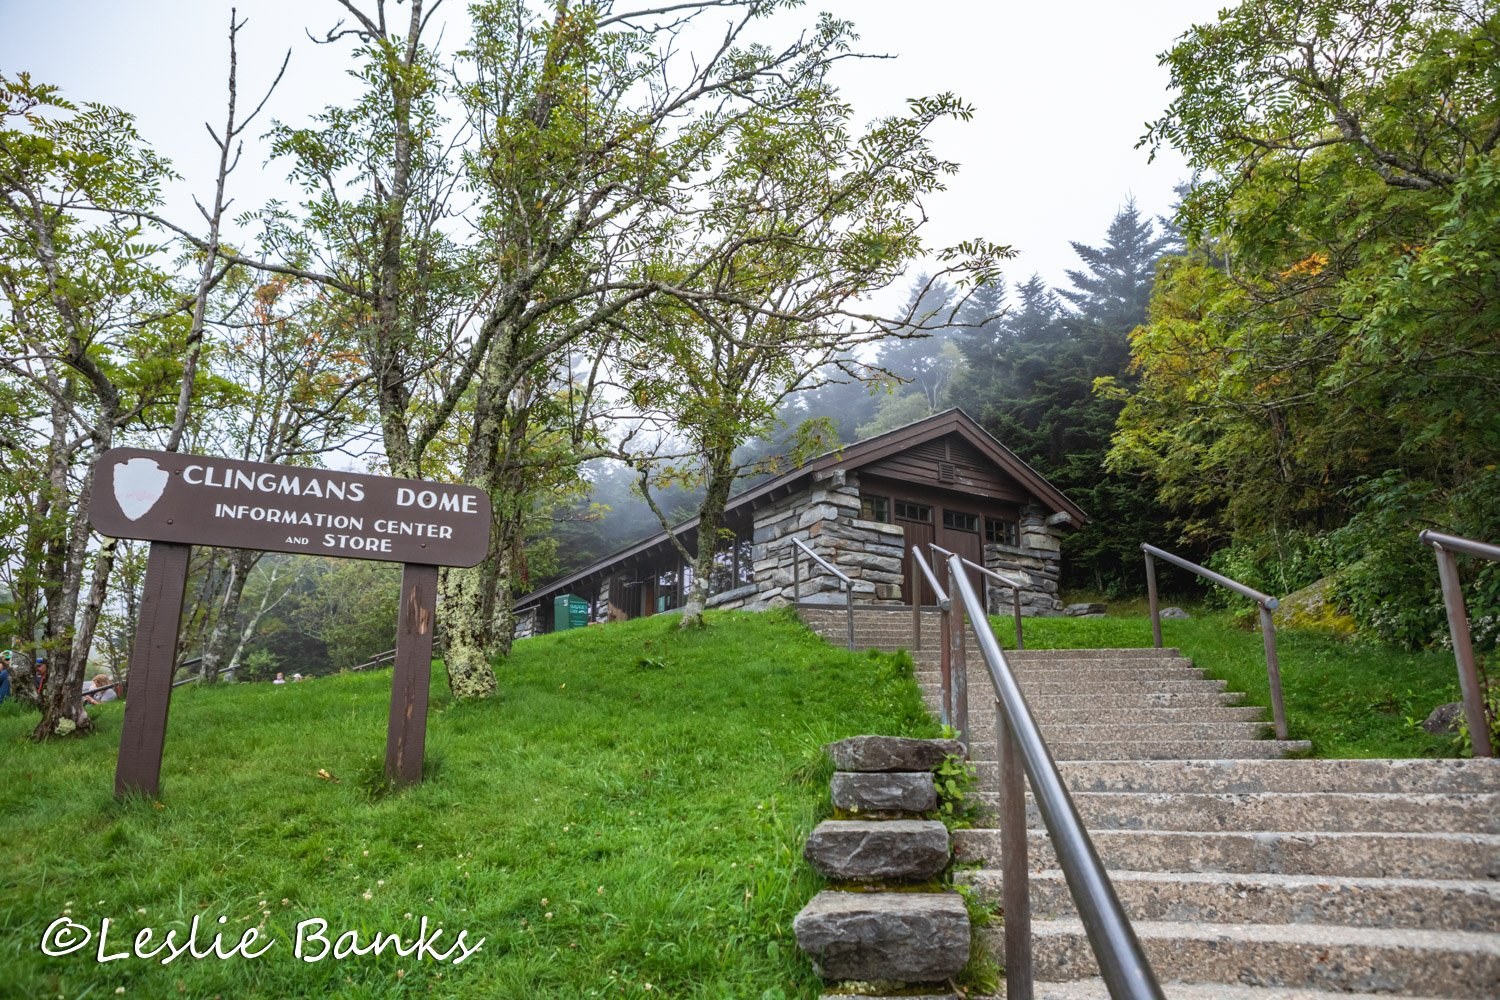 Clingmans Dome Visitor Center